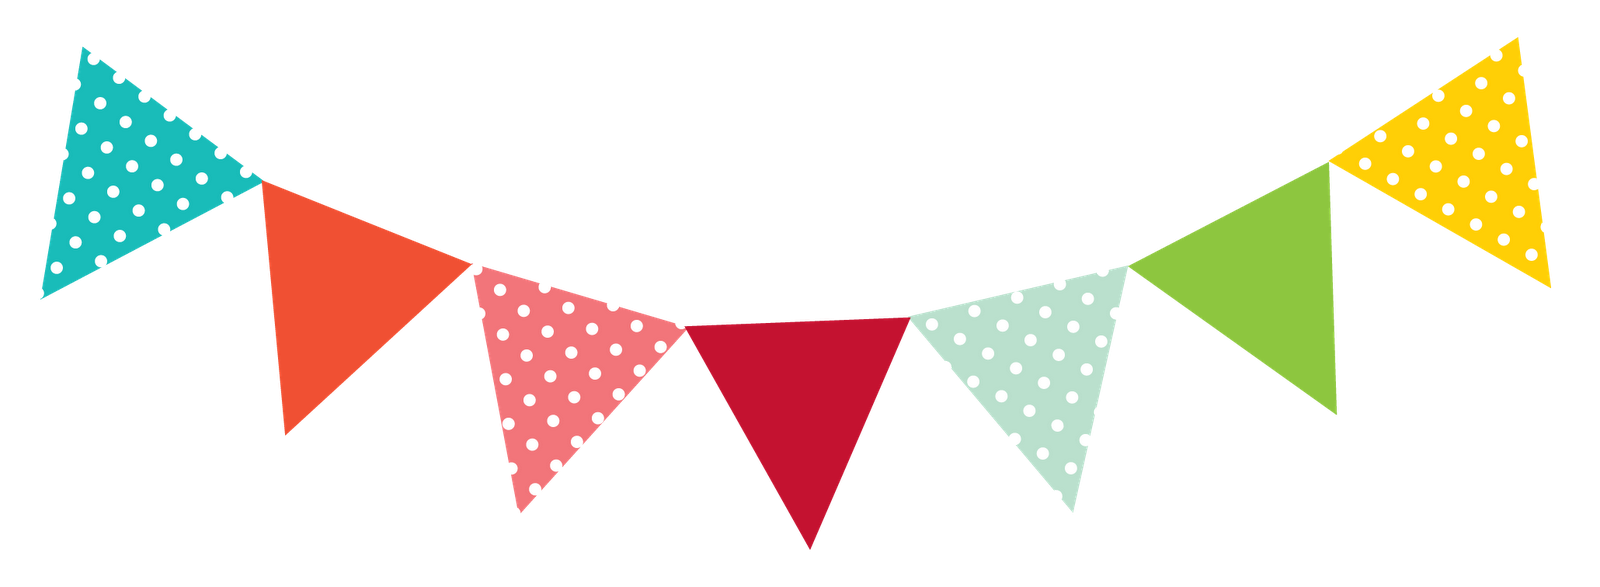 Bunting Banner Clipart - Clipart Kid